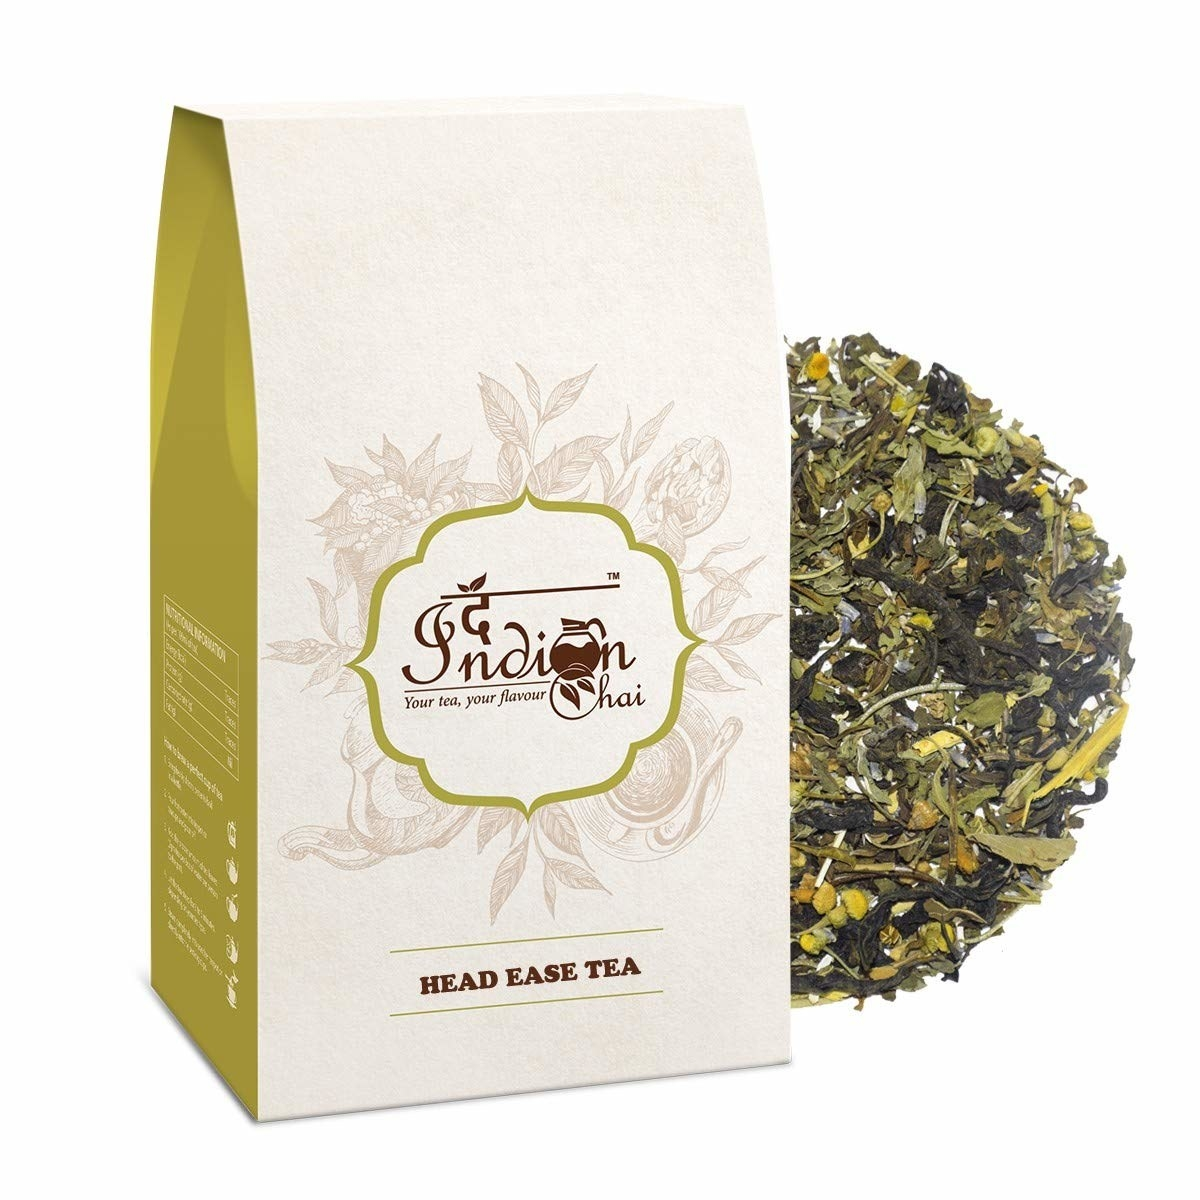 A packet of the Head Ease Tea with dried herbs in the background.